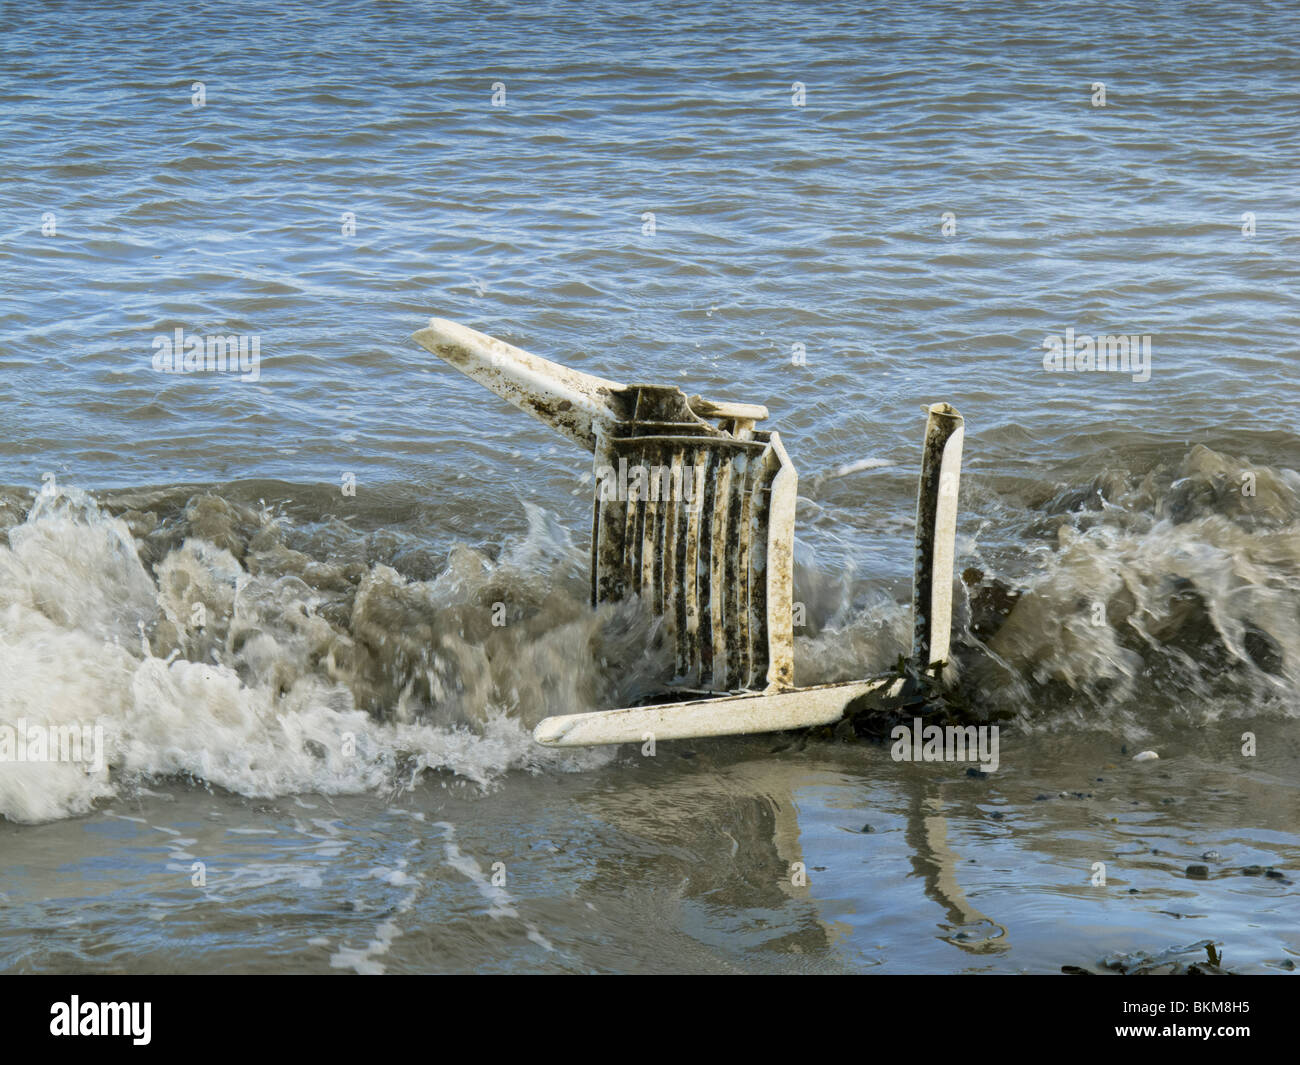 A dumped broken plastic garden chair in the sea on the beach at Skerries, county Dublin, Ireland - Stock Image